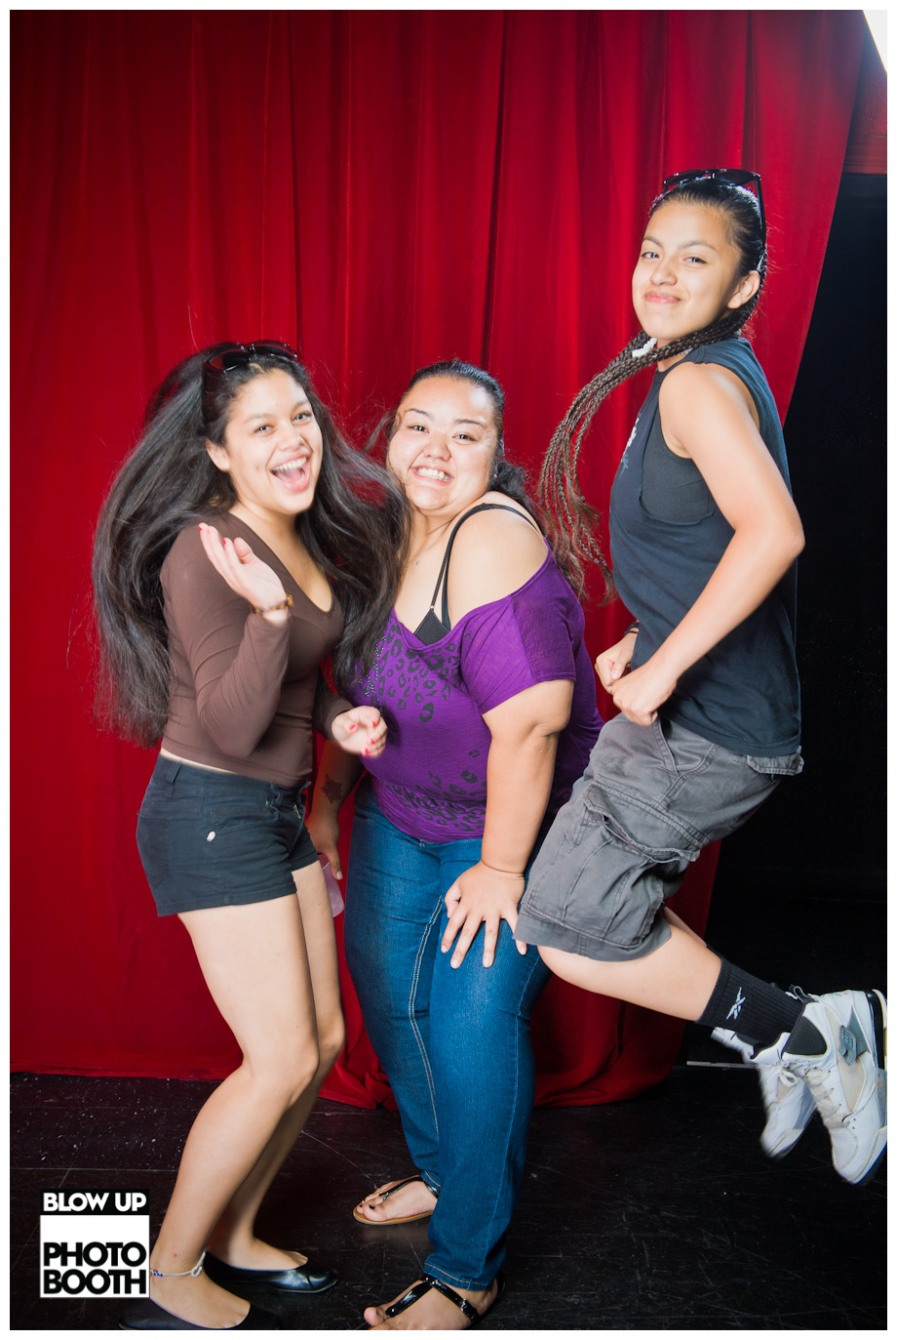 blow_up_8-27-2011-3134